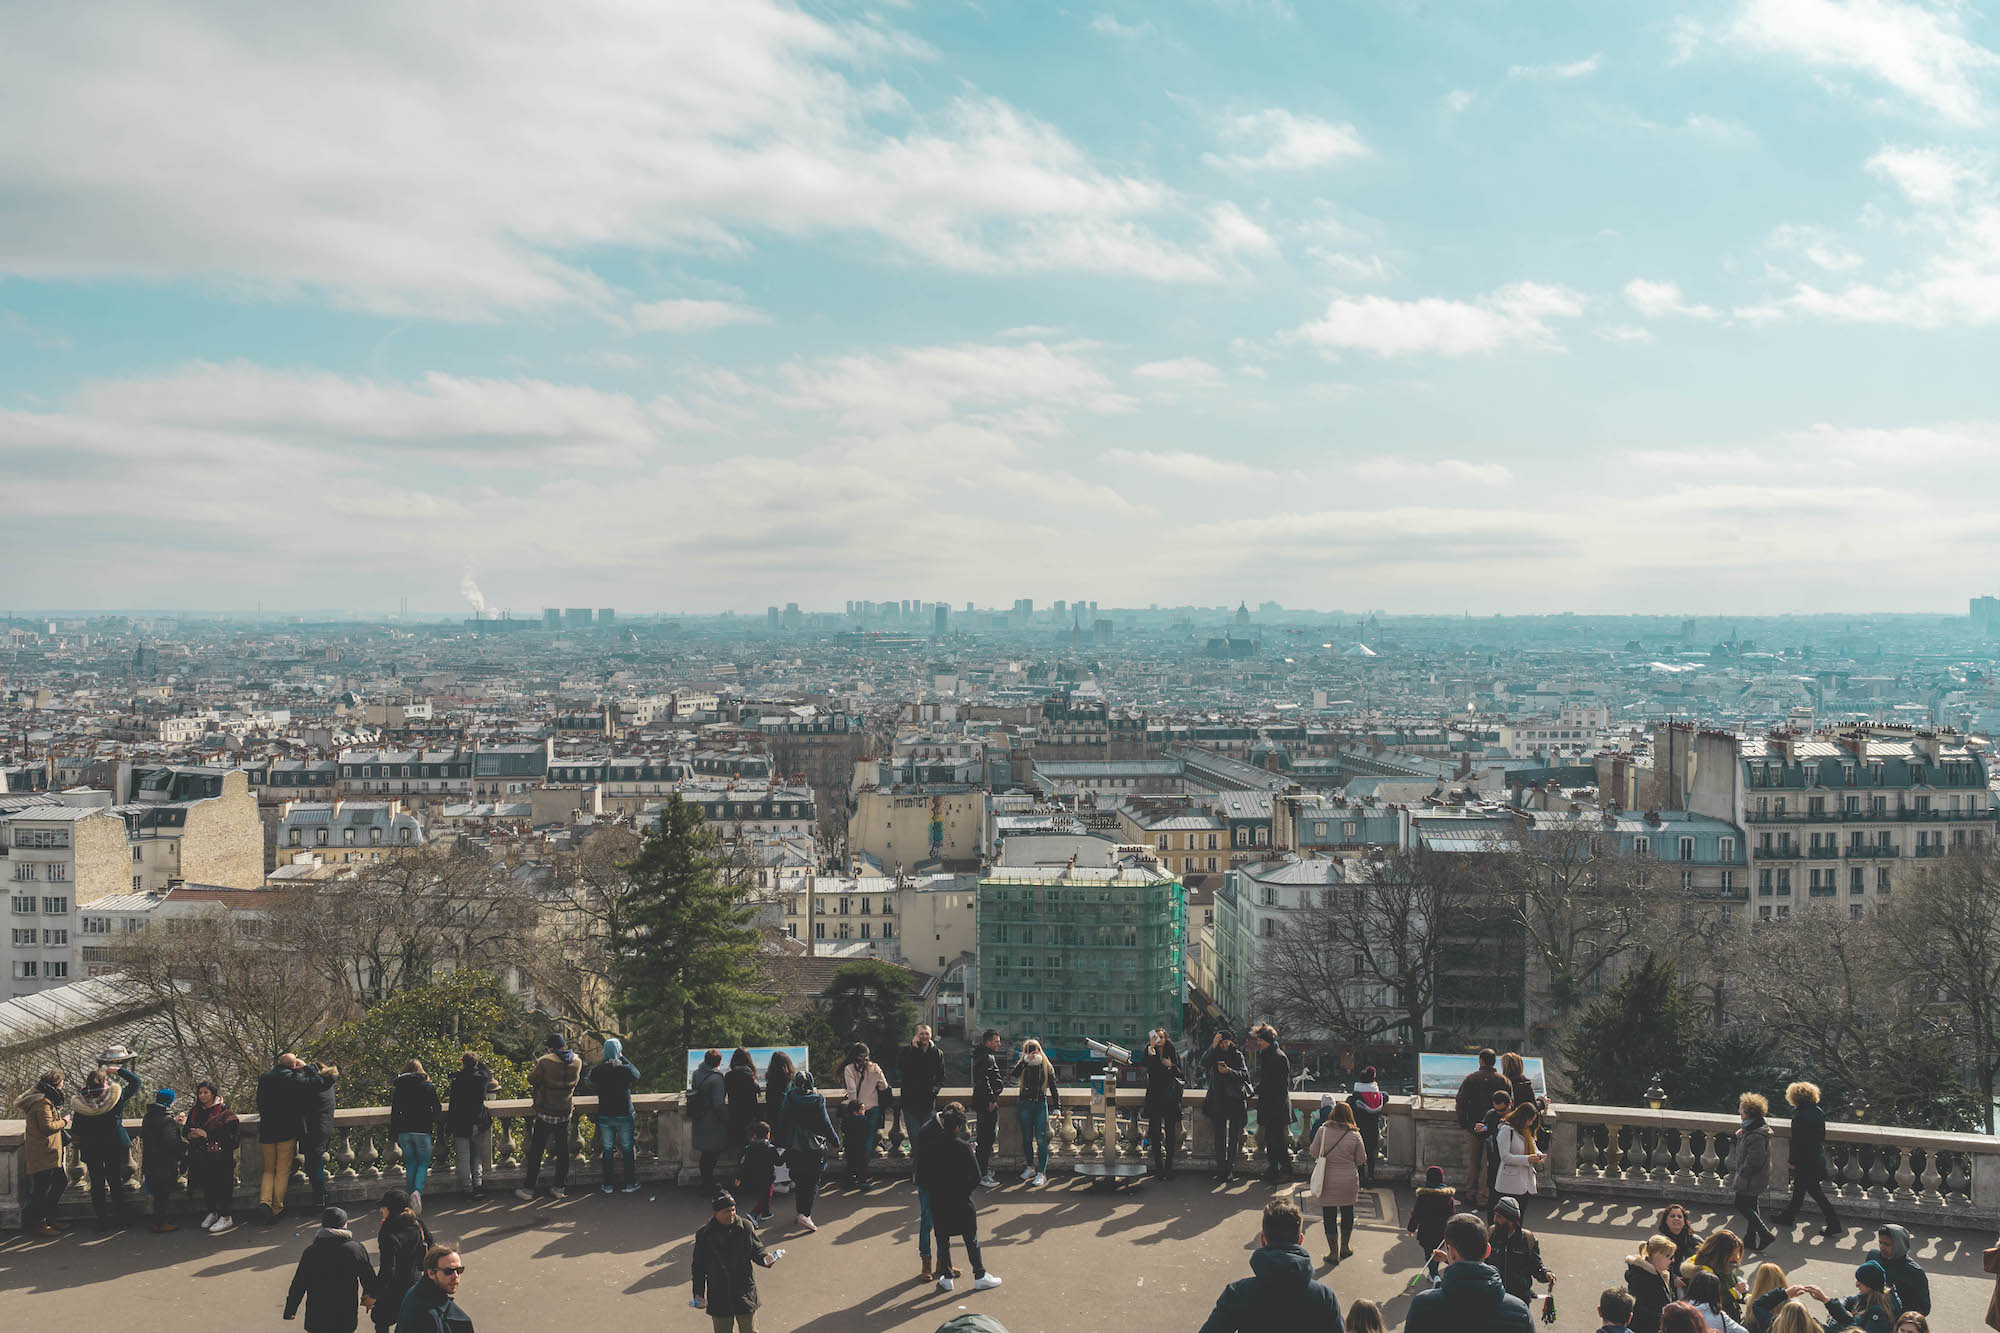 Paris podcast host Oliver Gee's tips on how to see Paris, including views from Montmartre.